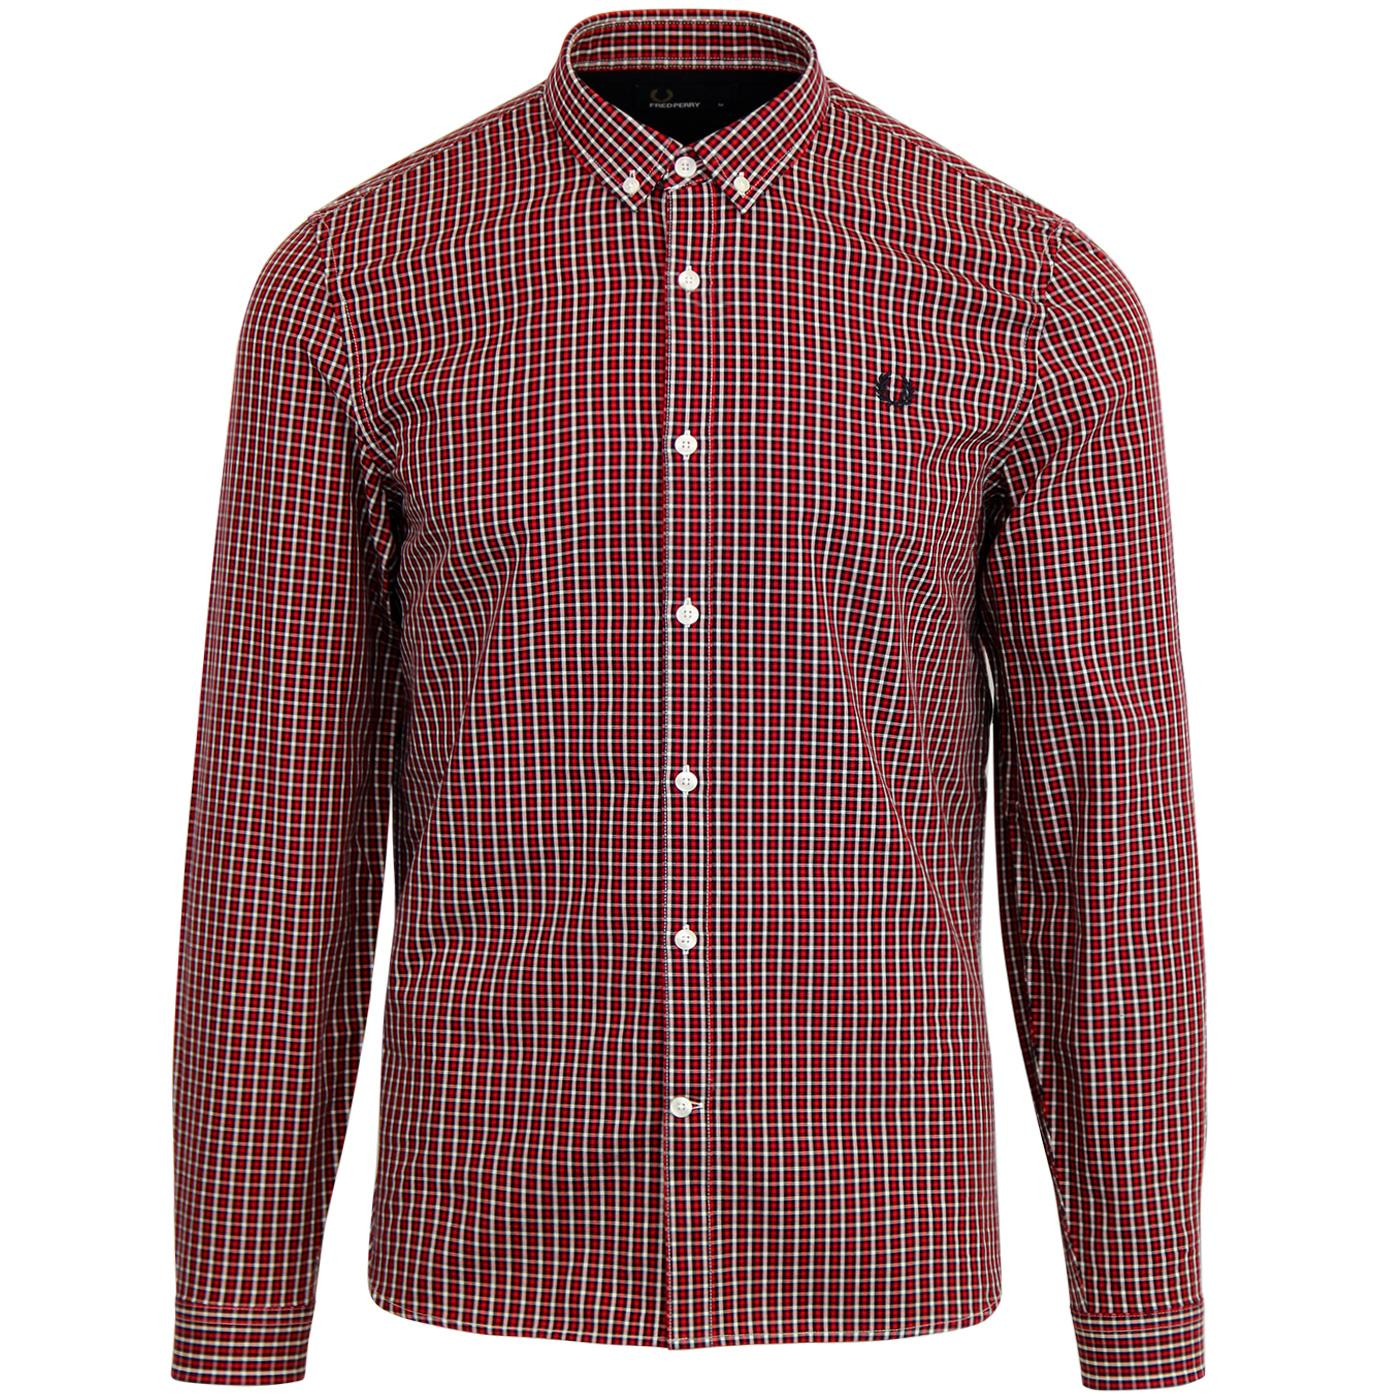 FRED PERRY Button Down Basketweave Check Shirt (R)